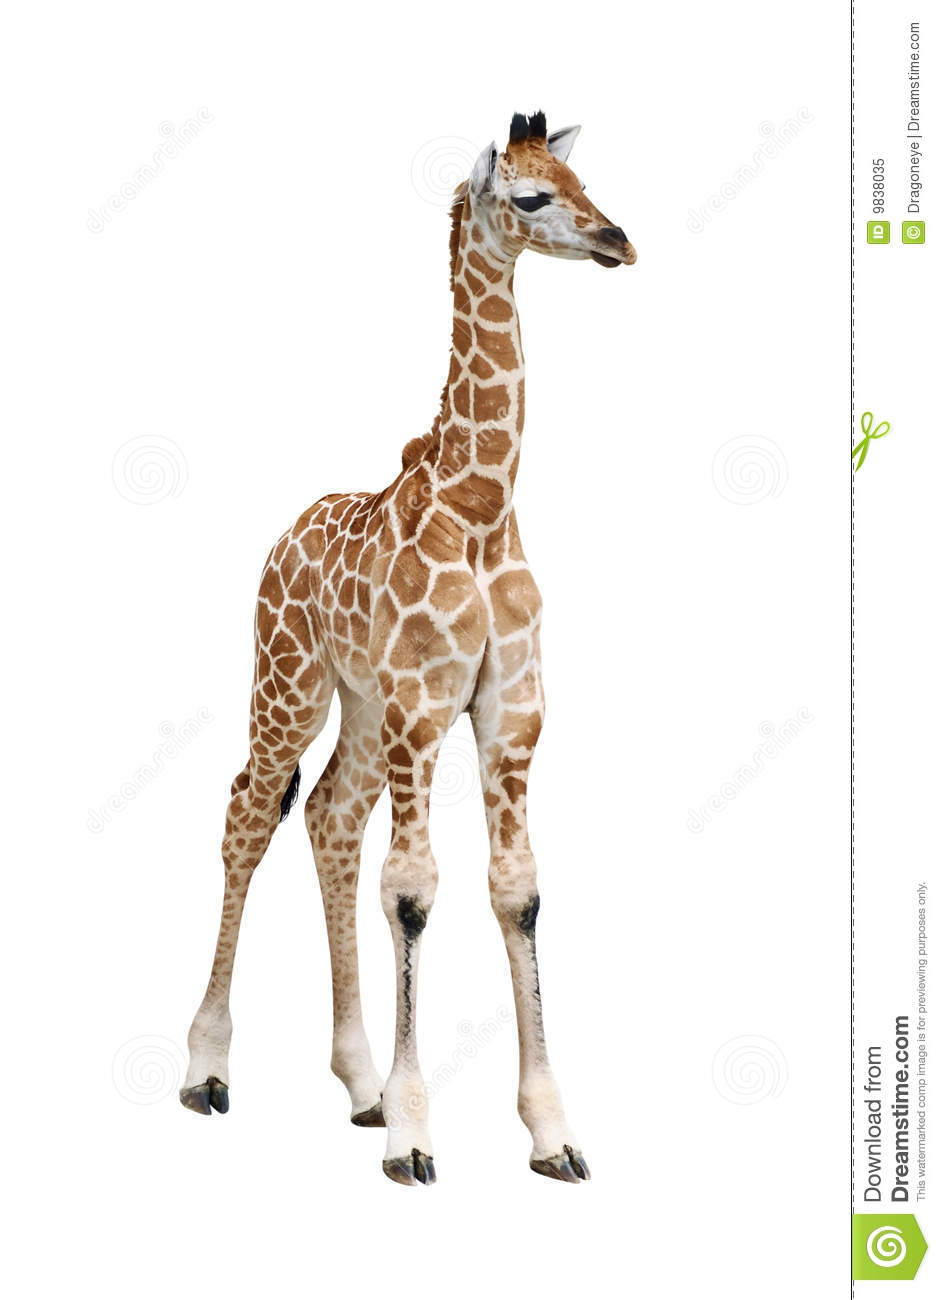 giraffe calf on white royalty free stock photo image old tree stump clipart free Black and White Clip Art Tree Stump